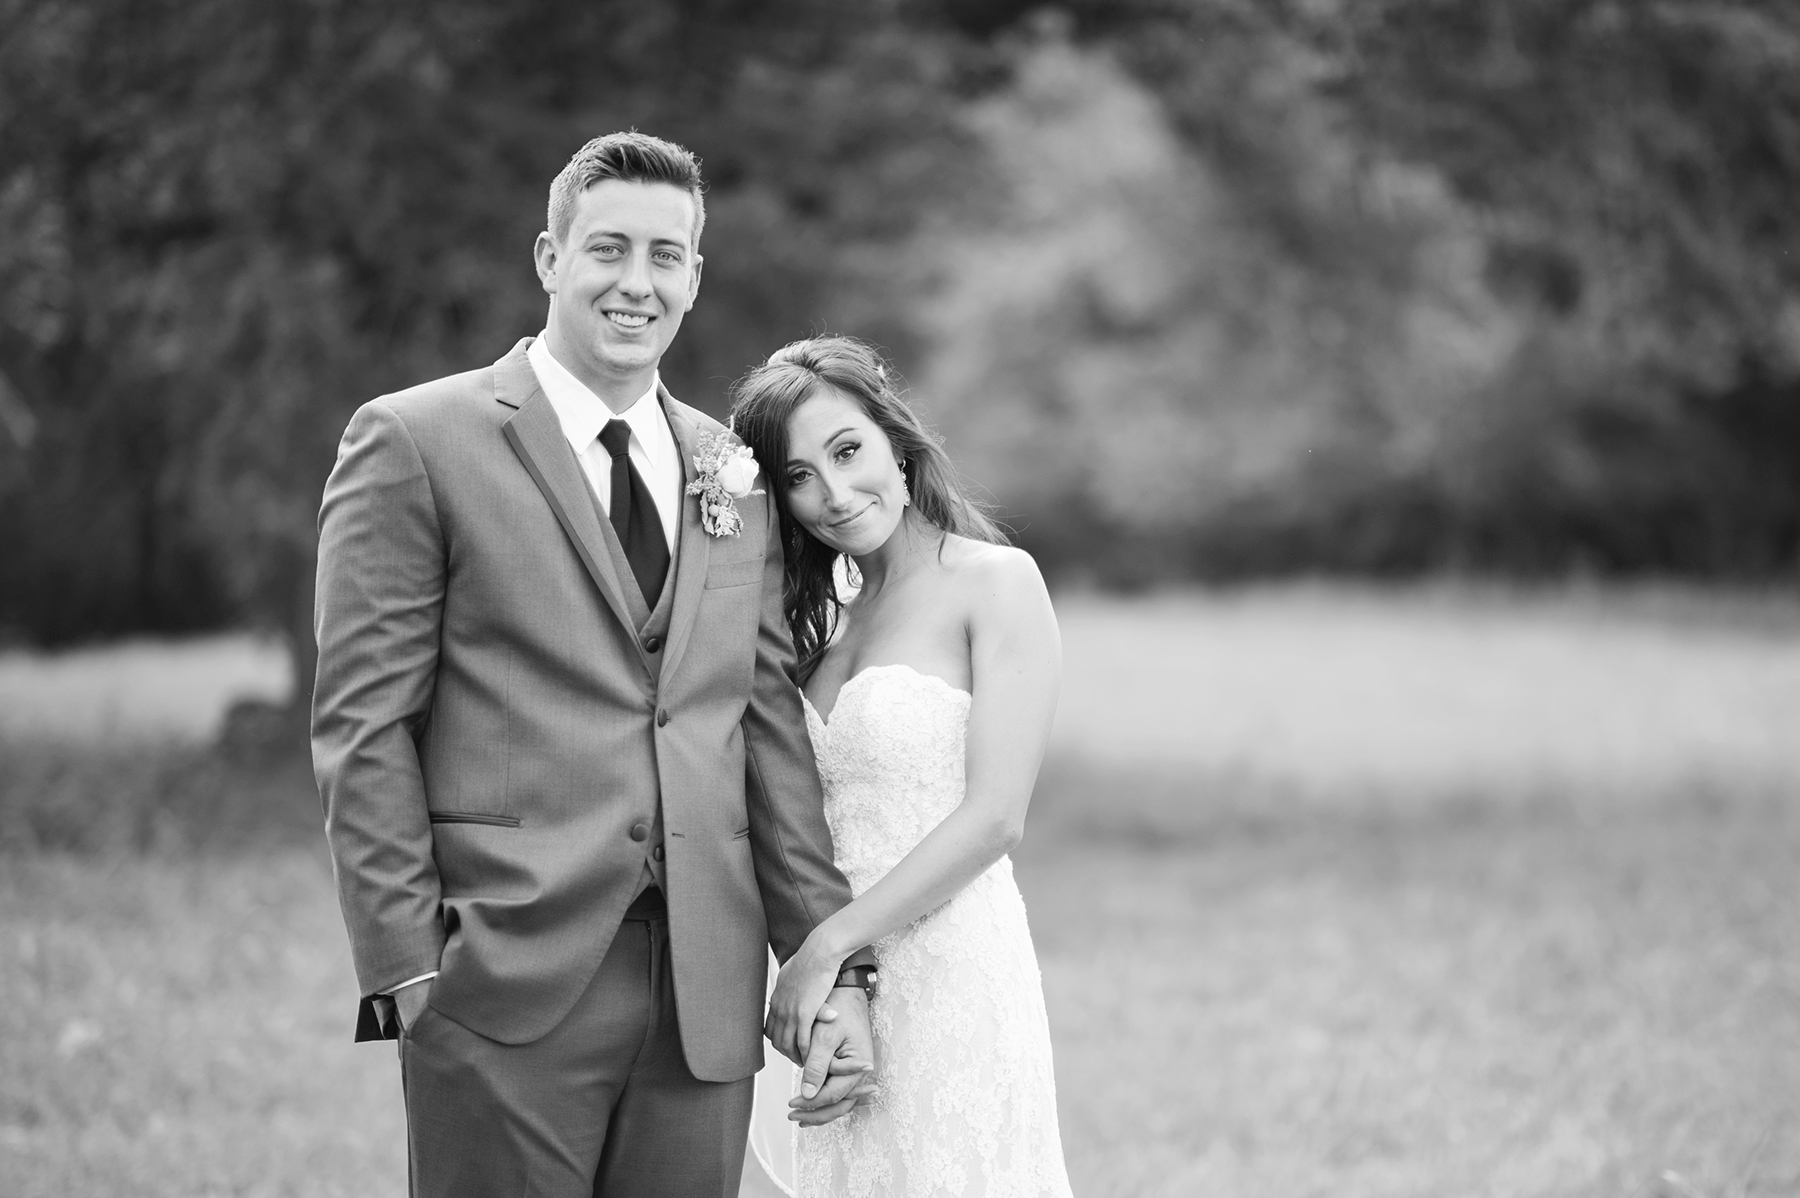 Ely Fair Photography | Oklahoma Wedding |